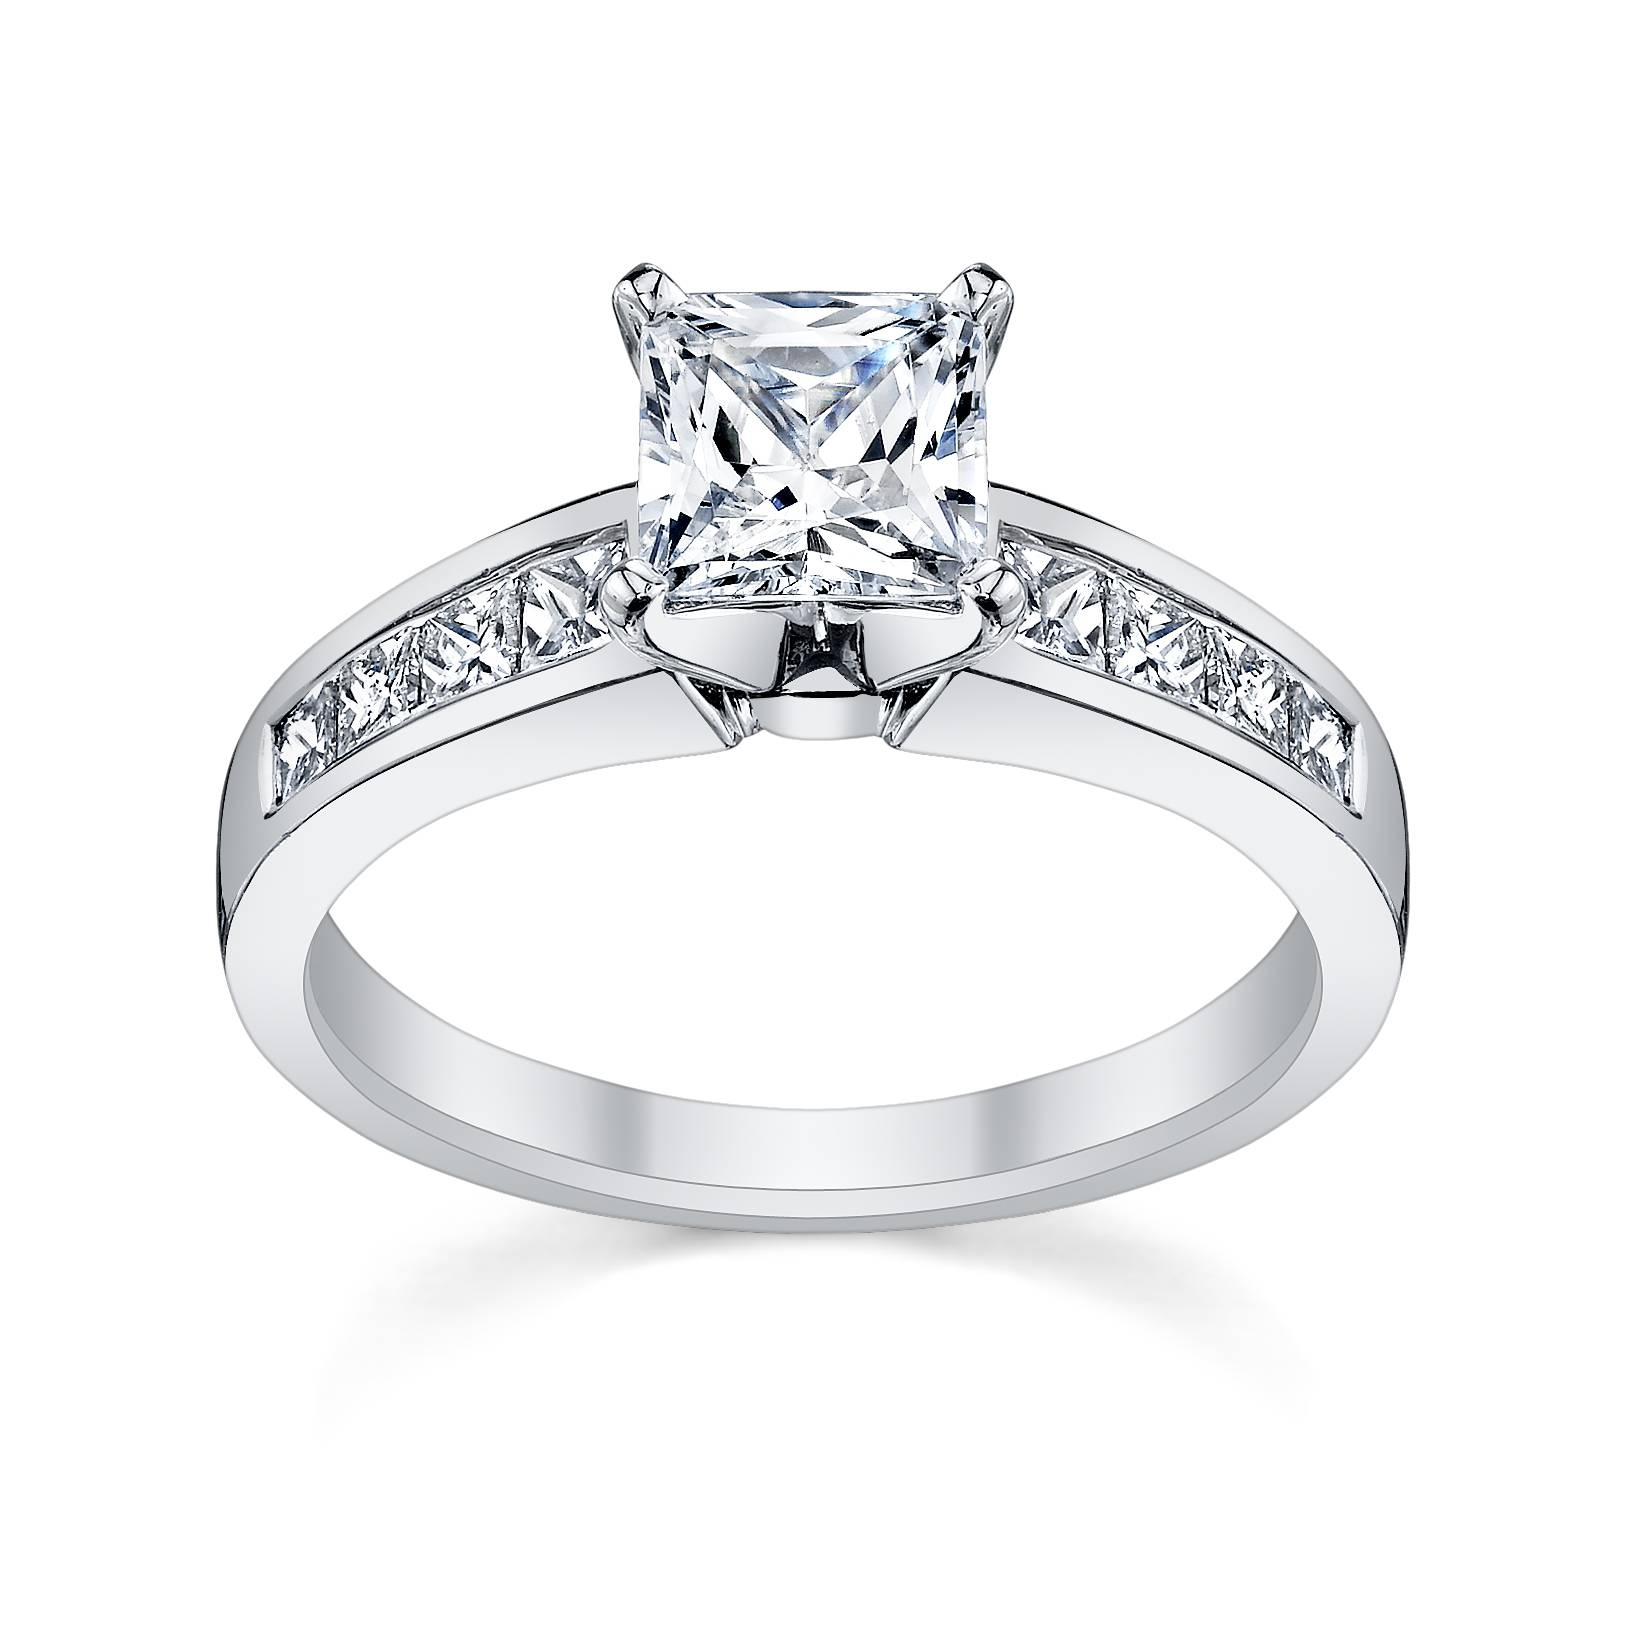 Wedding Rings : Princess Cut Diamond Engagement Ring And Wedding Intended For Princess Cut Diamond Wedding Rings (View 14 of 15)